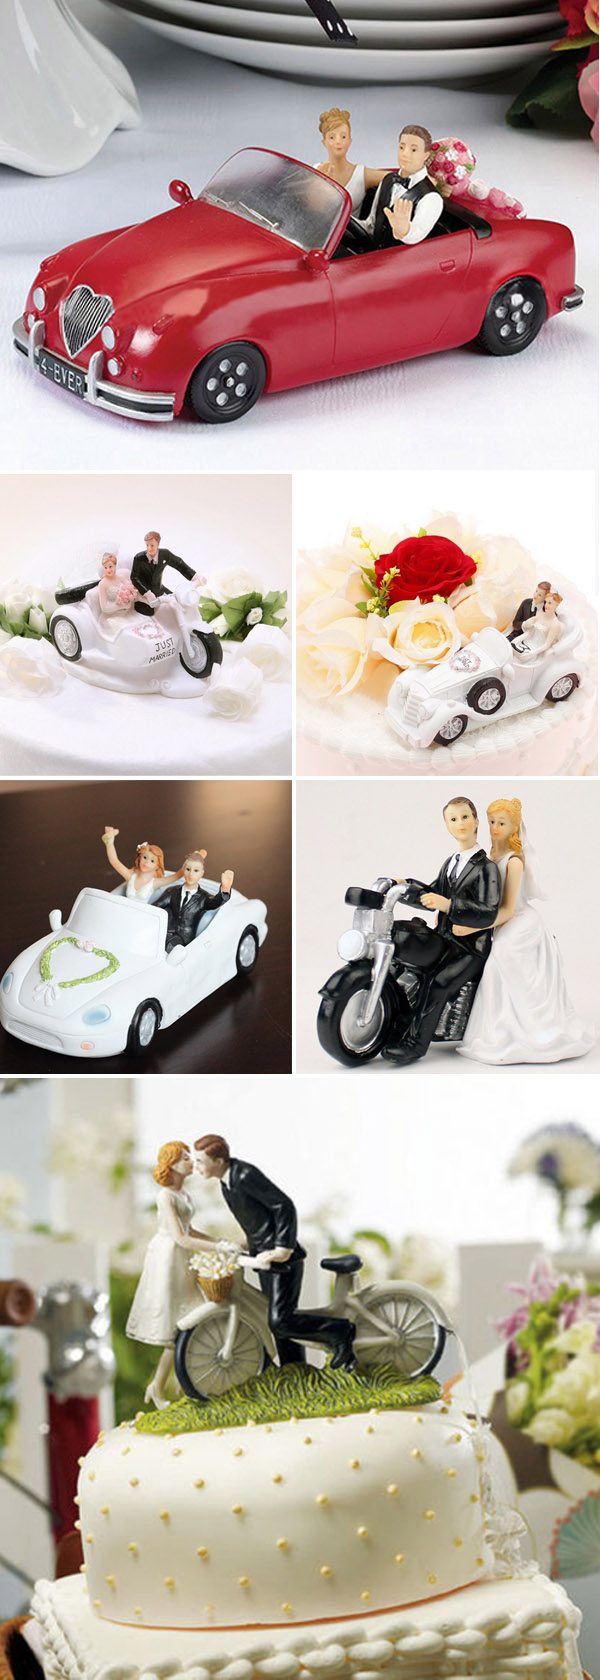 car, motorcycle and bicycle wedding cake topper ideas